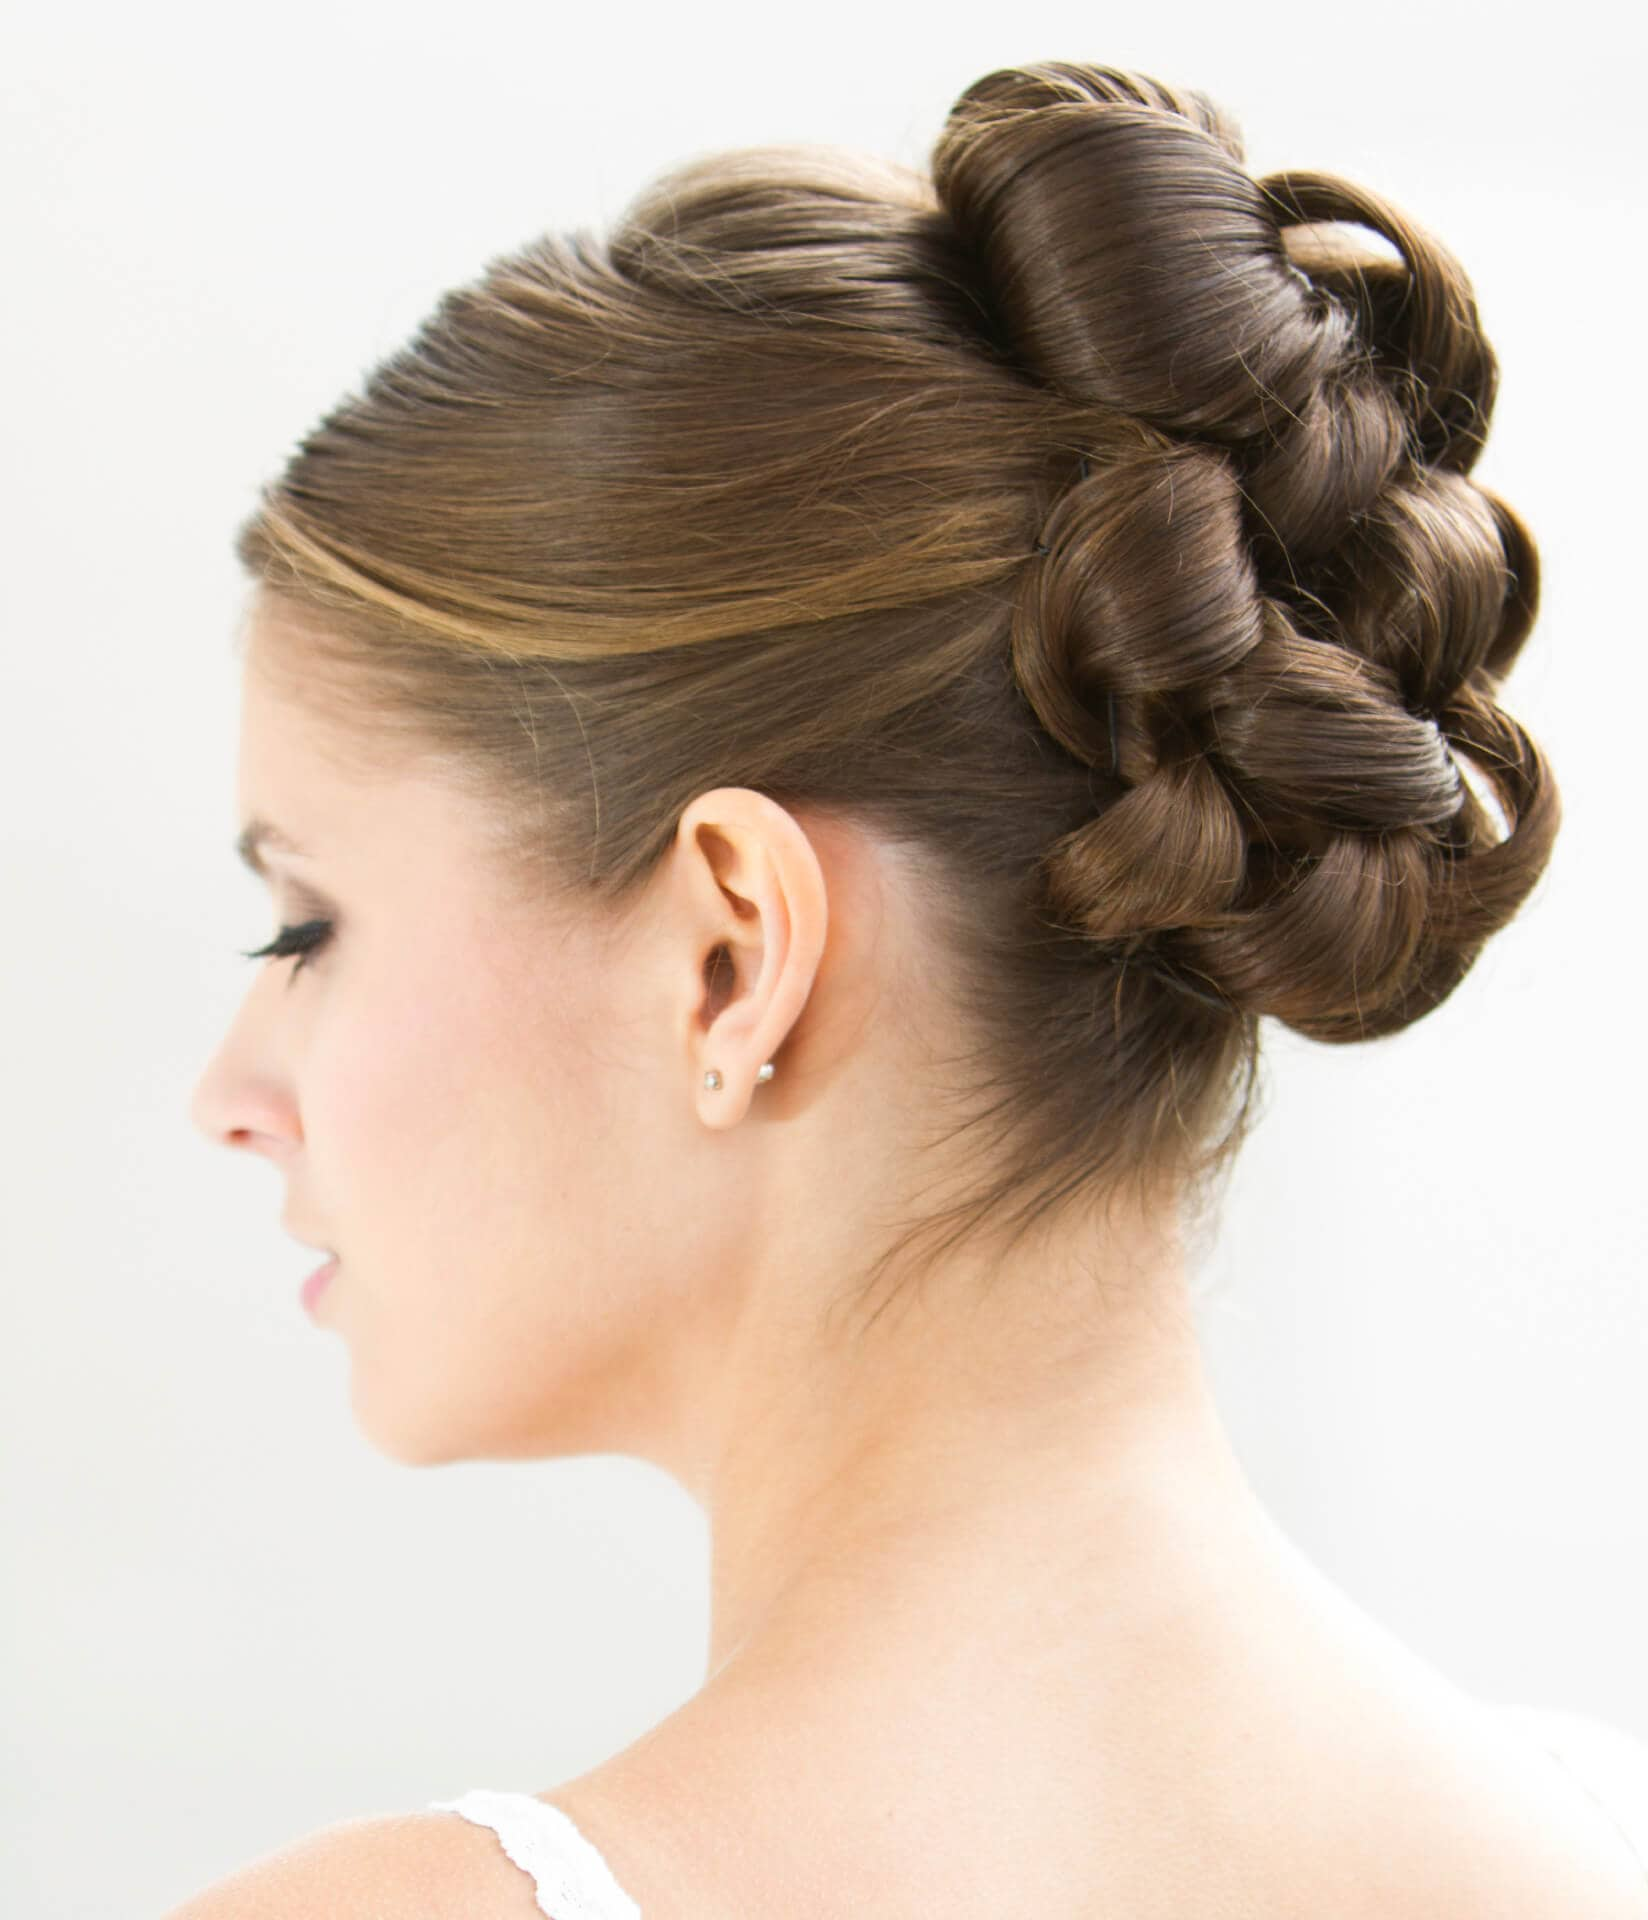 Wedding Hairstyle Ringlets: 3 Elegant Wedding Hairstyles For Medium Hair + How Tos